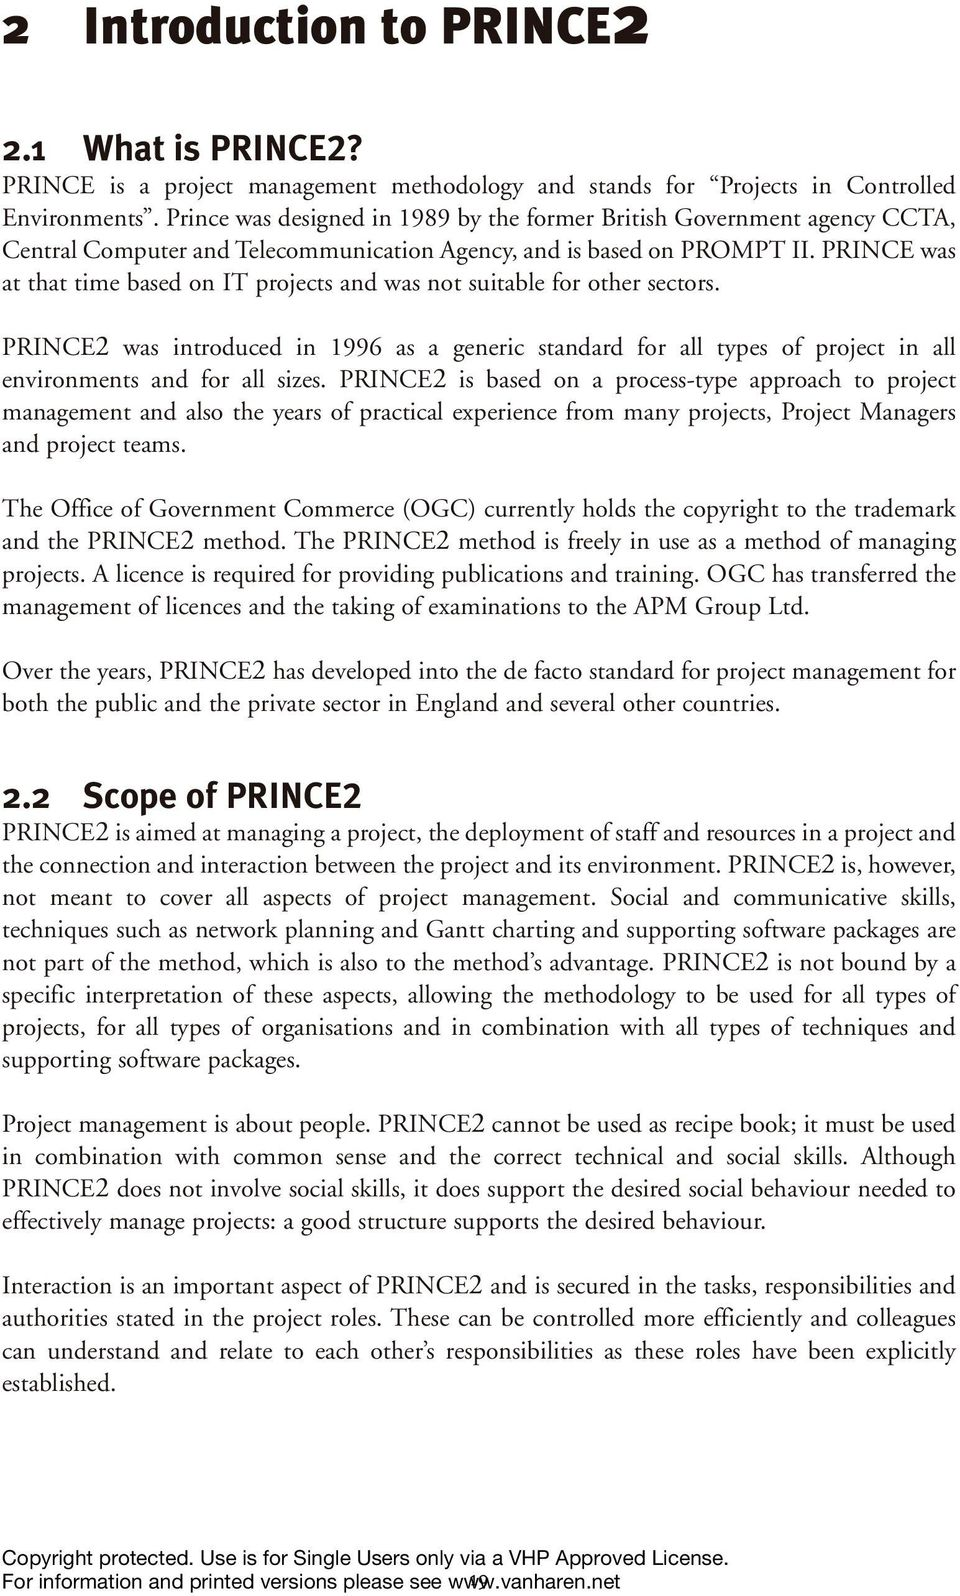 PRINCE was at that time based on IT projects and was not suitable for other sectors.